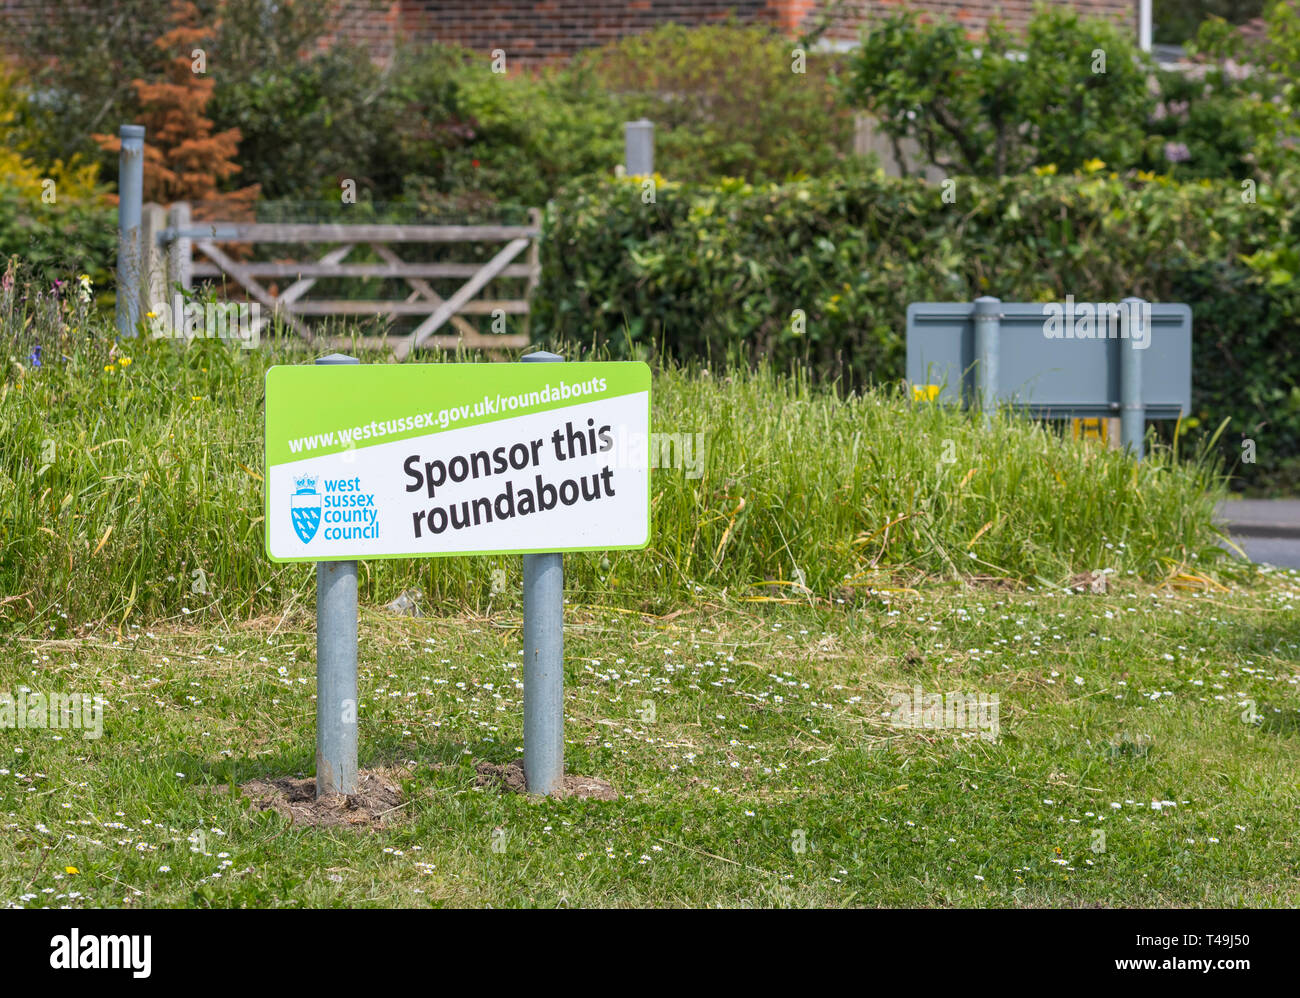 Sponsor this roundabout sign on a roundabout in the UK. - Stock Image